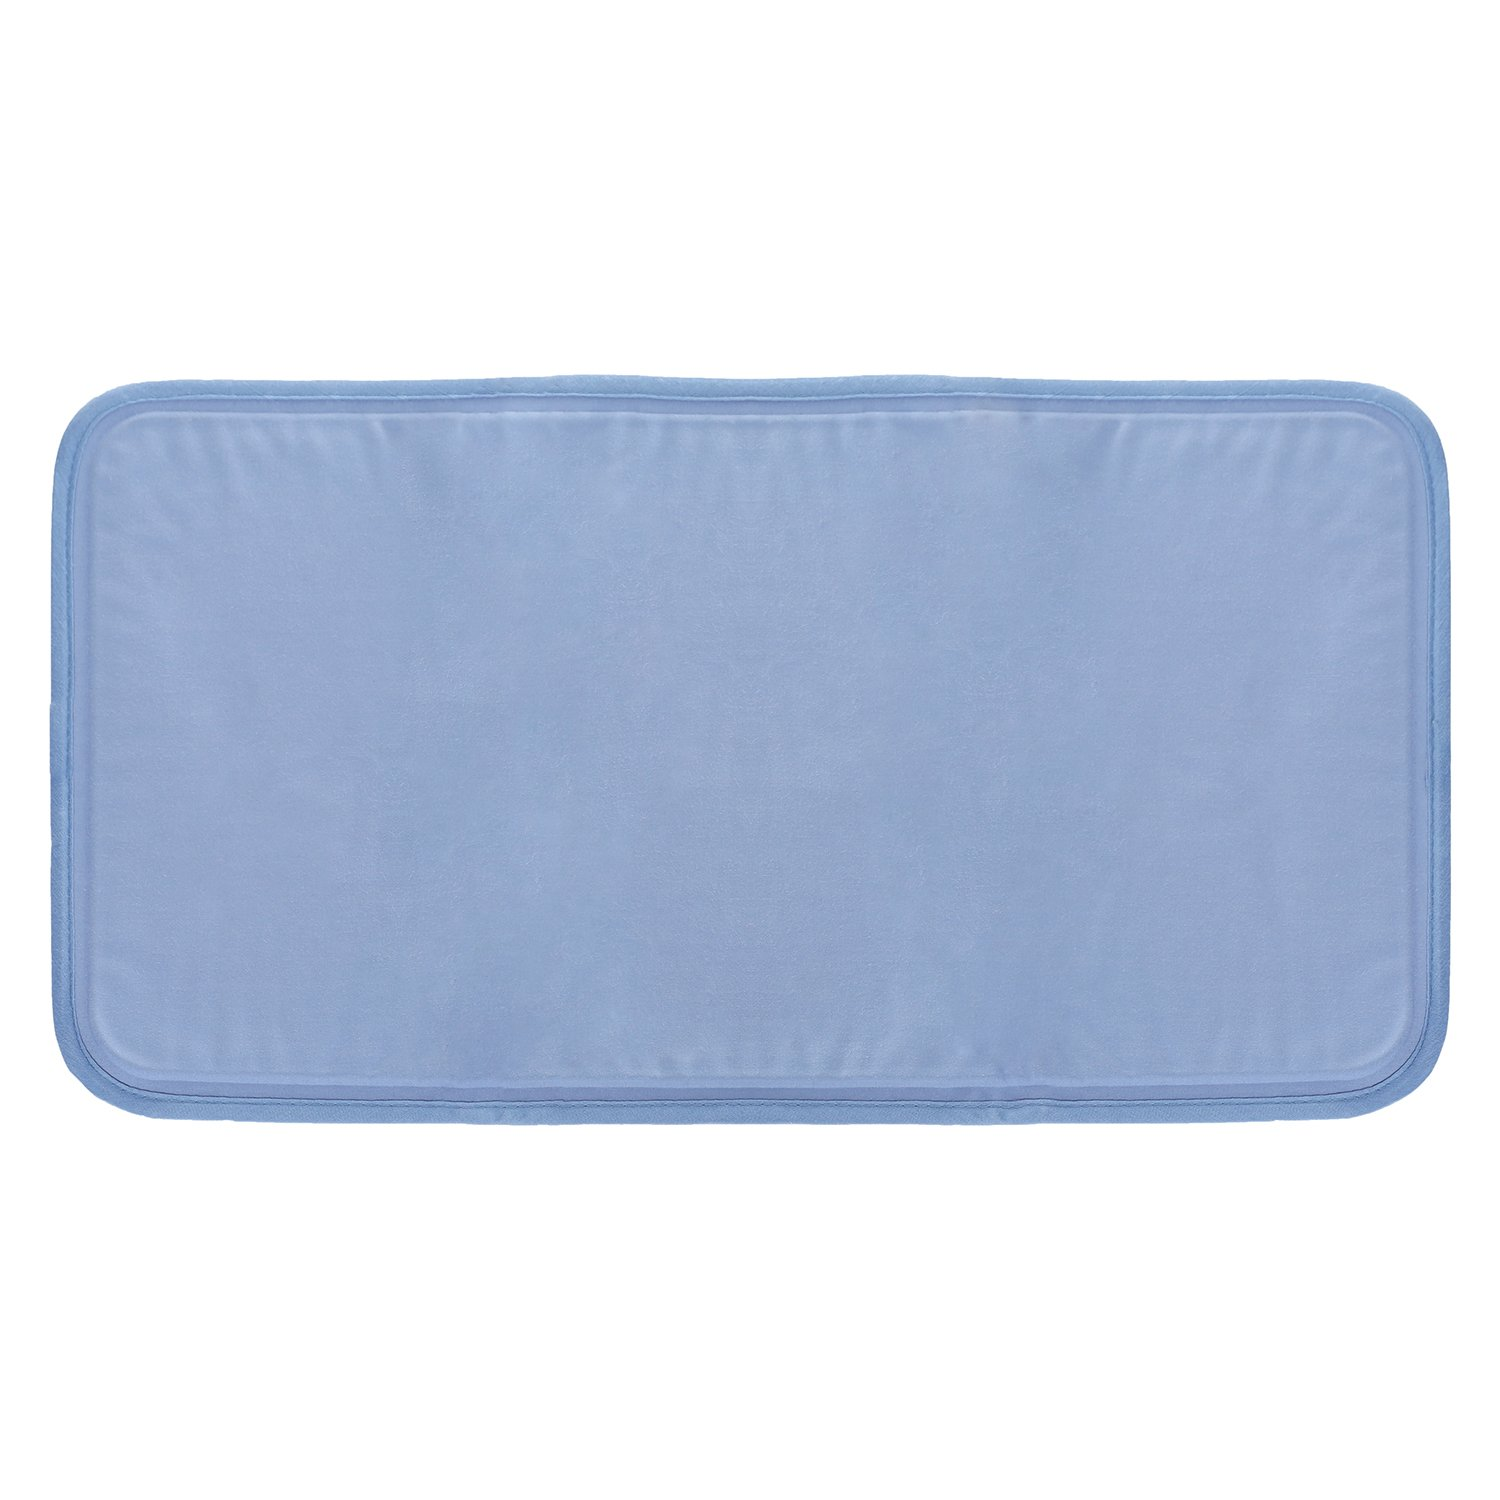 "LiveFine Cooling Pillow pad, Relief For Night Sweats, Migraines, Hot Flashes, Fevers, Neck Pain Large Size 12"" x 15"", Foldable Solid Gel Cool Mat"